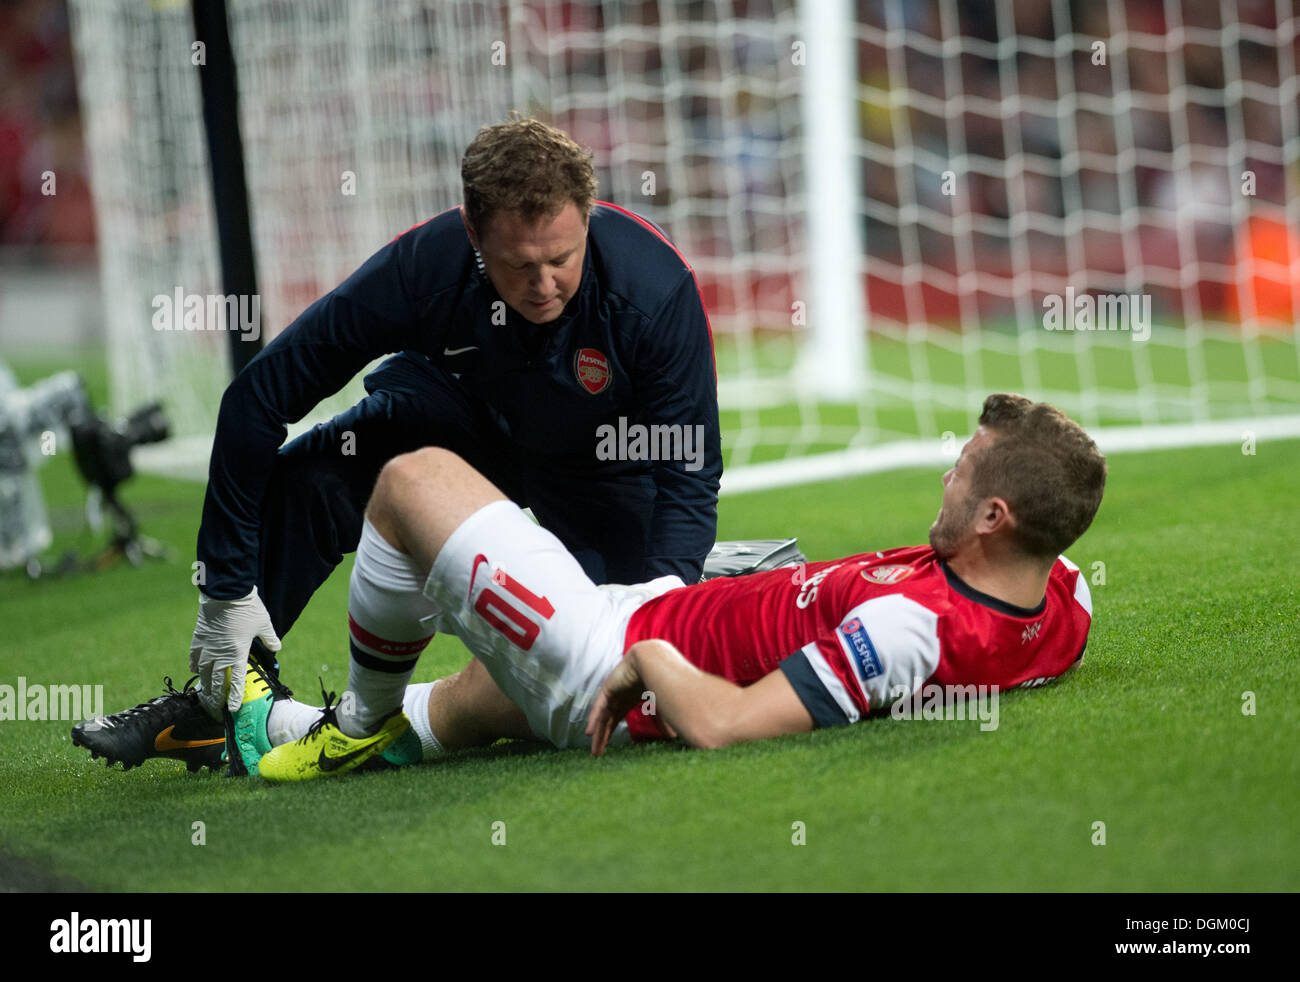 London, UK. 22nd Oct, 2013. Arsenal's Jack Wilshere gets medical treatment during the Champions League group F soccer match between Arsenal FC and Borussia Dortmund at the Emirates Stadium in London, UK, 22 October 2013. Photo: Bernd Thissen/dpa/Alamy Live News - Stock Image